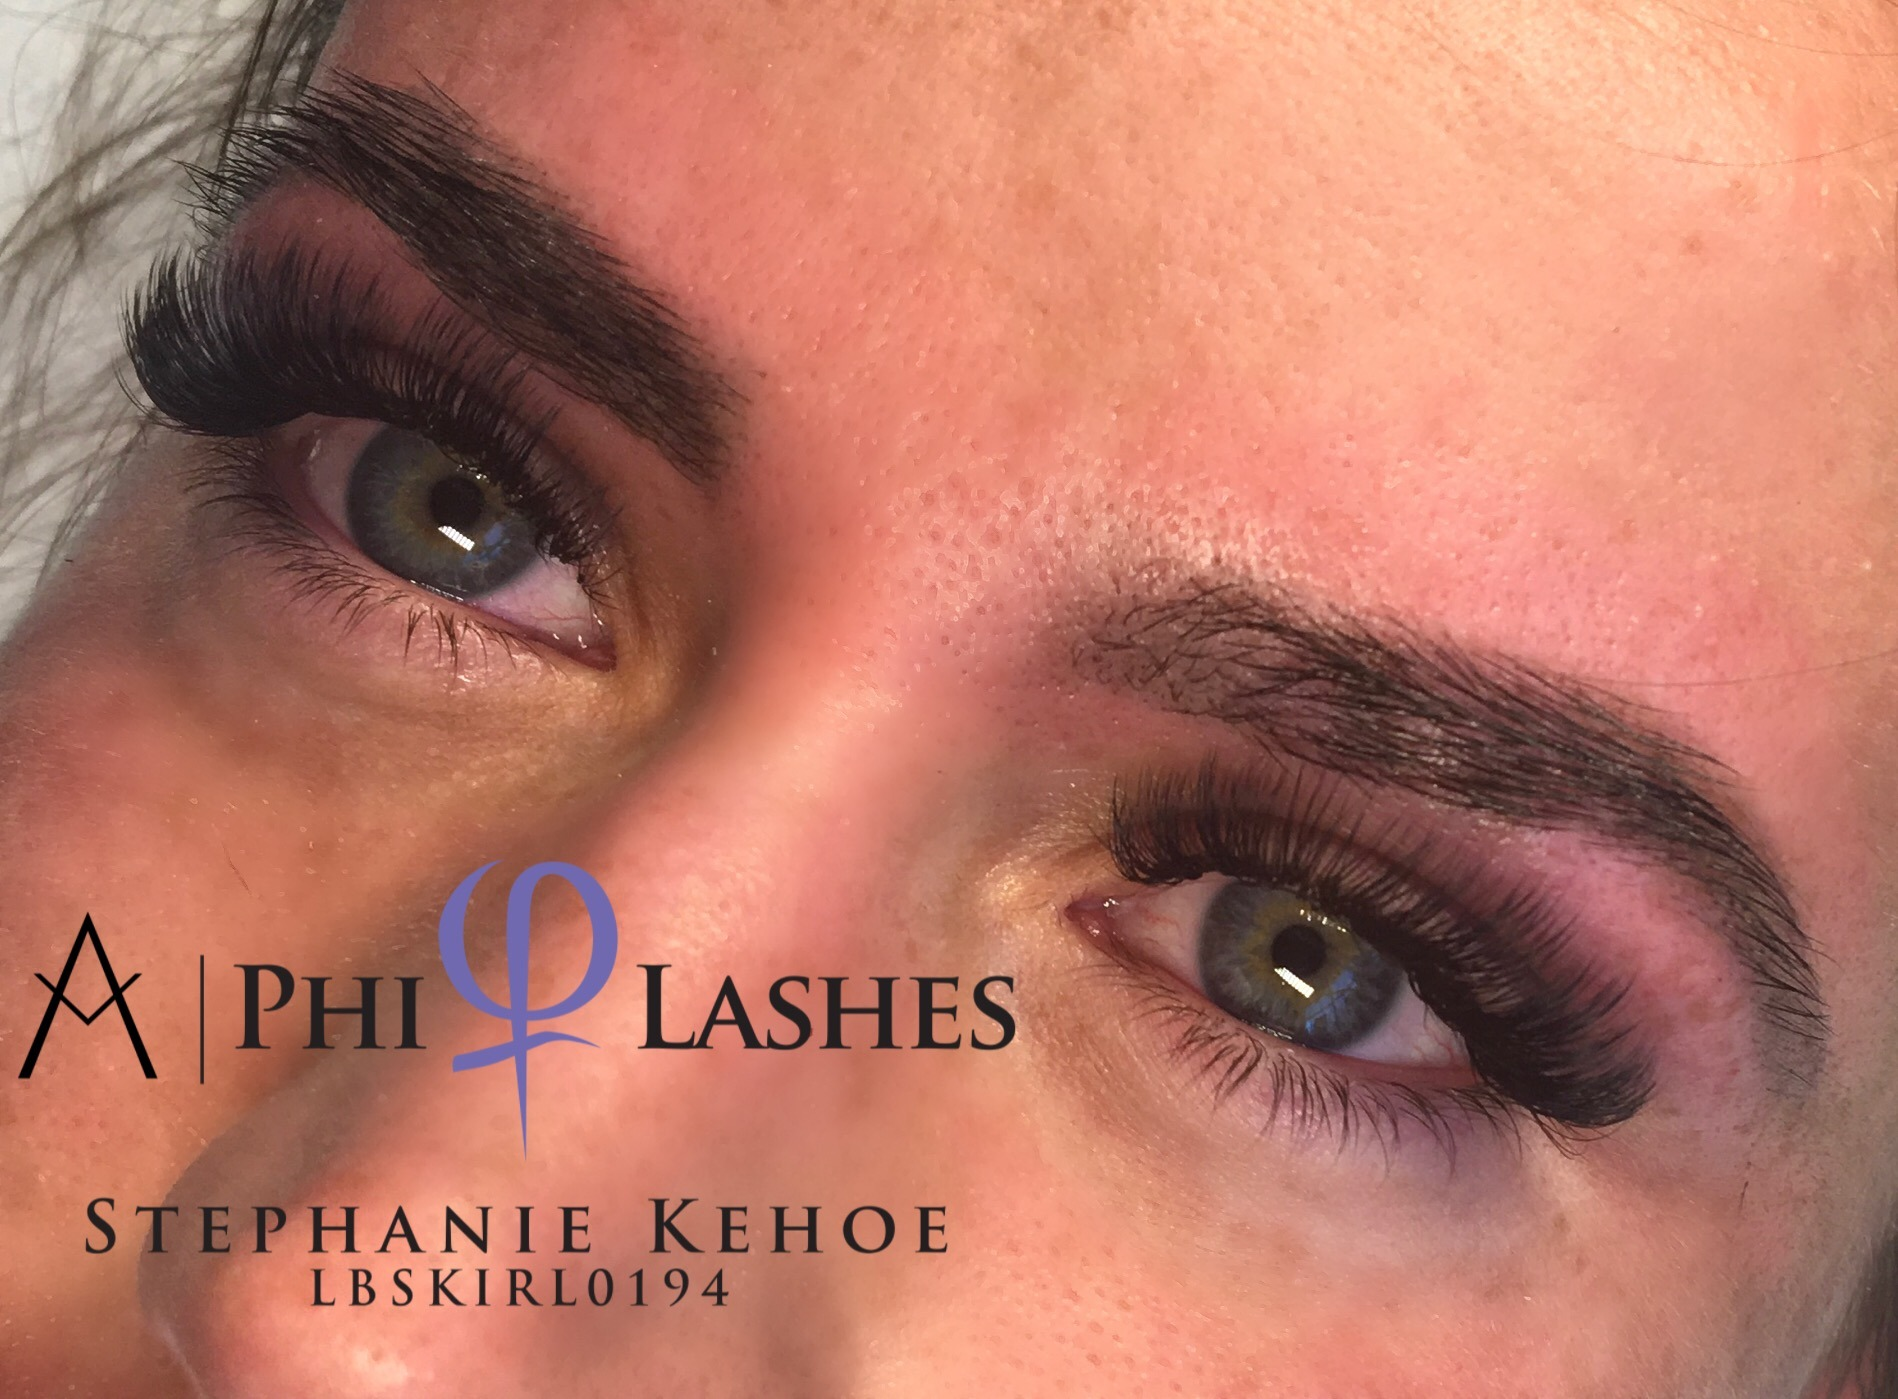 dd4453c5c59 Also specialising in Yumi Lash Lift, Lash Botox & Keratin treatments, HD  Brows, threading, waxing and tinting, as well as introducing Microblading /  Phi ...